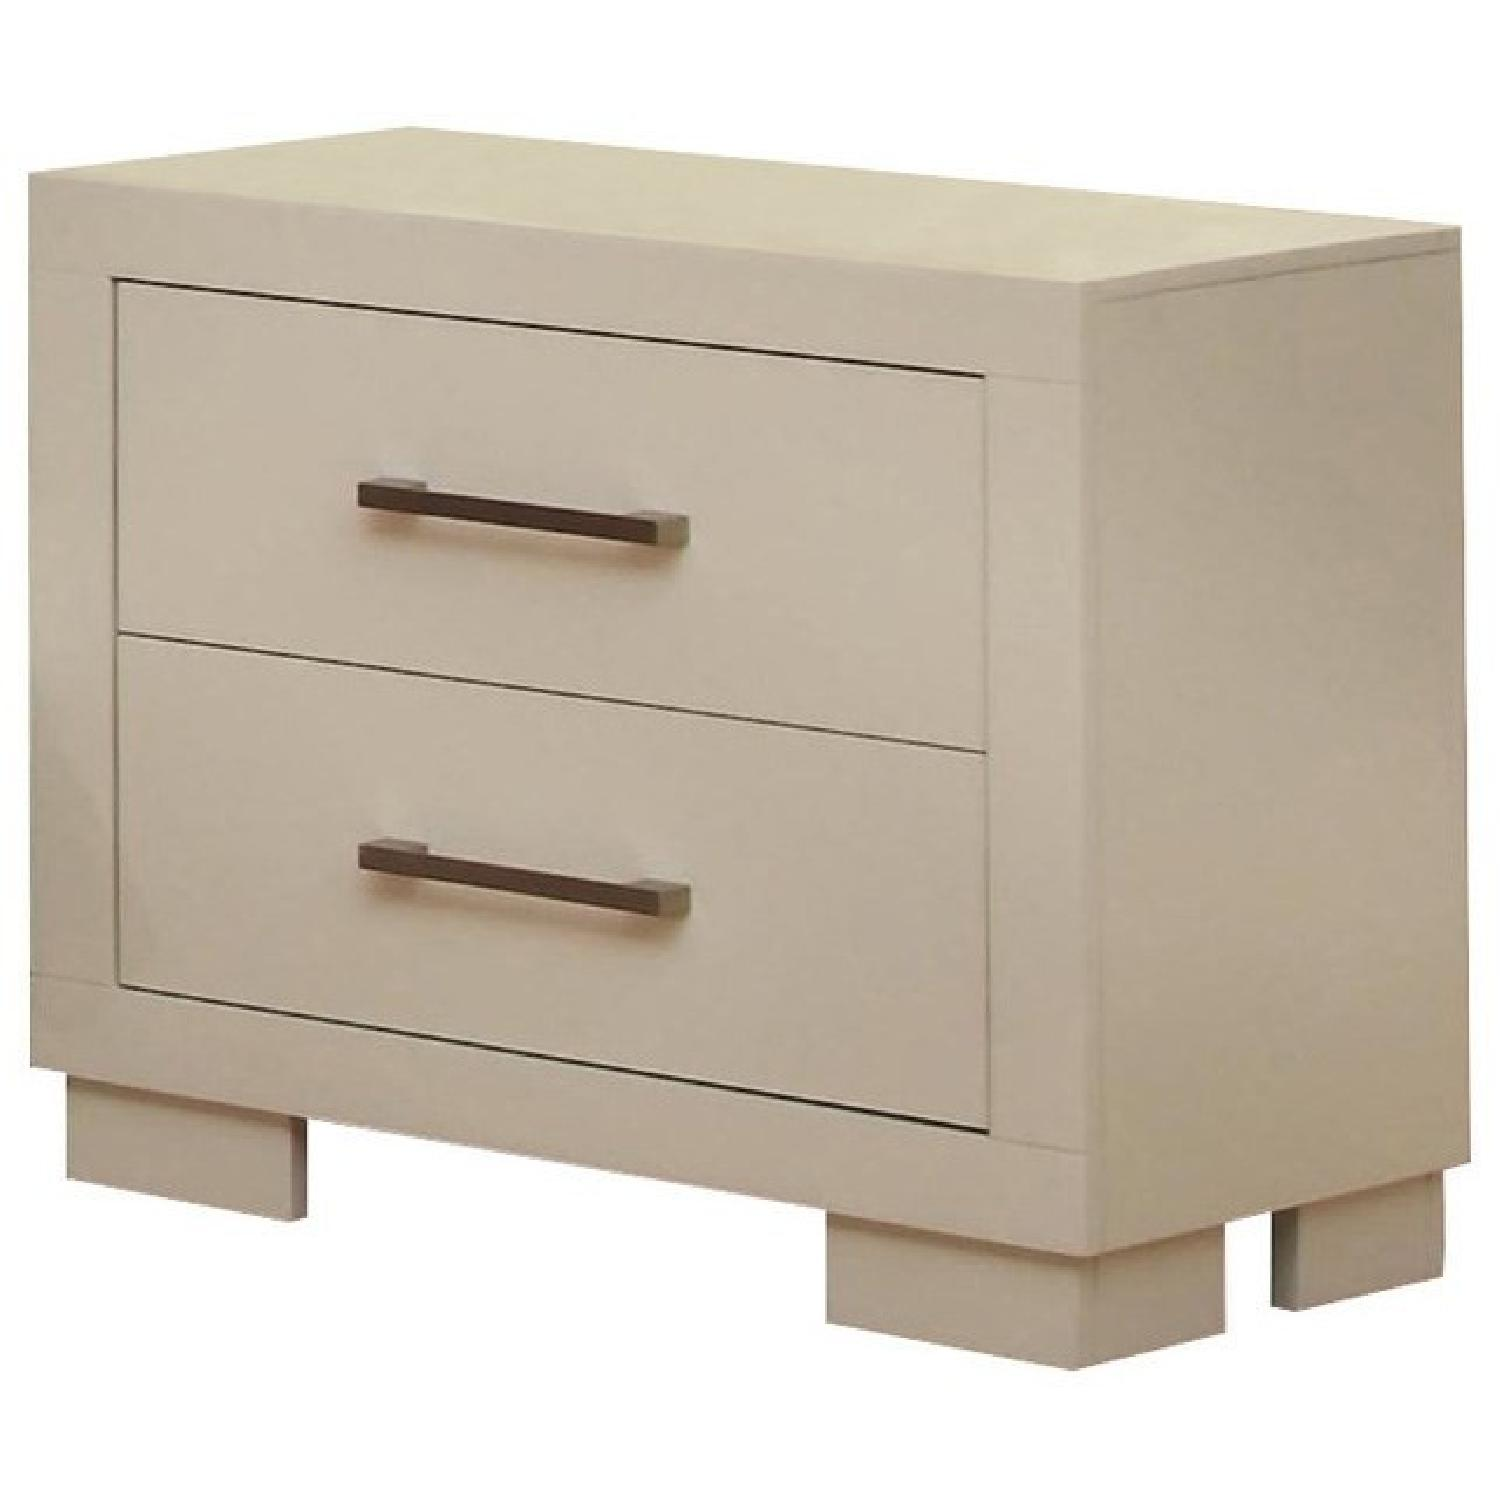 Two Drawer Nightstand in White